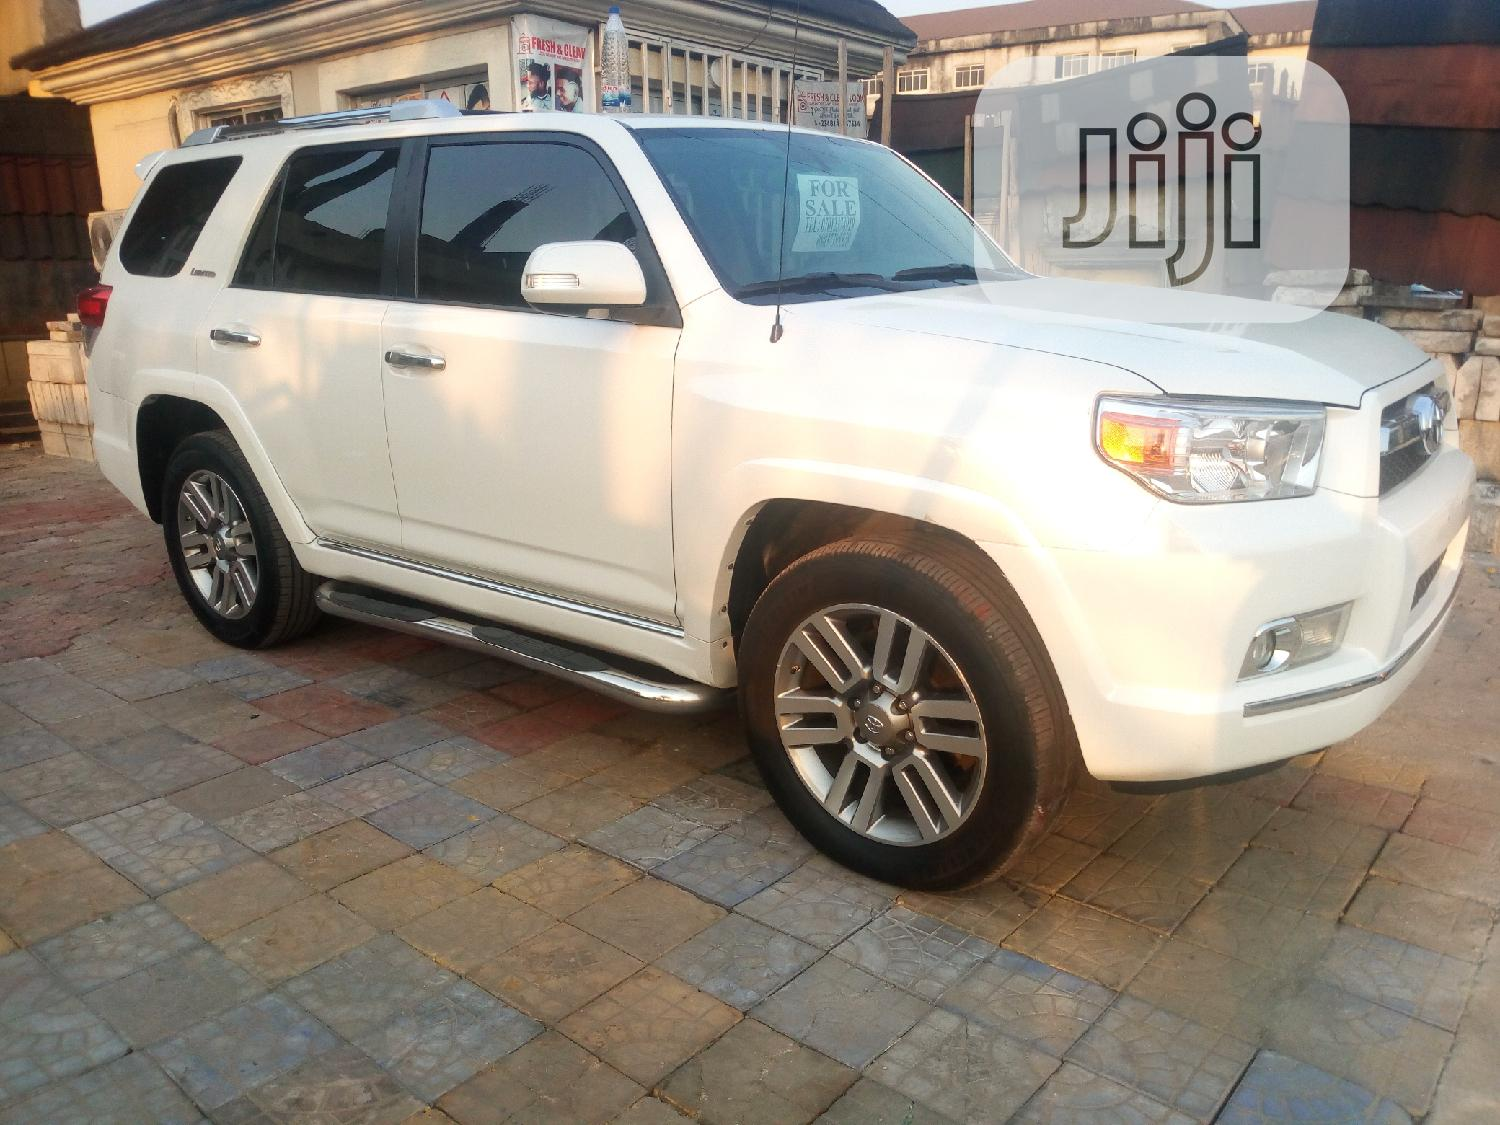 Toyota 4 Runner Limited 4wd 2010 White In Port Harcourt Cars Anyanwu Joseph Jiji Ng For Sale In Port Harcourt Buy Cars From Anyanwu Joseph On Jiji Ng